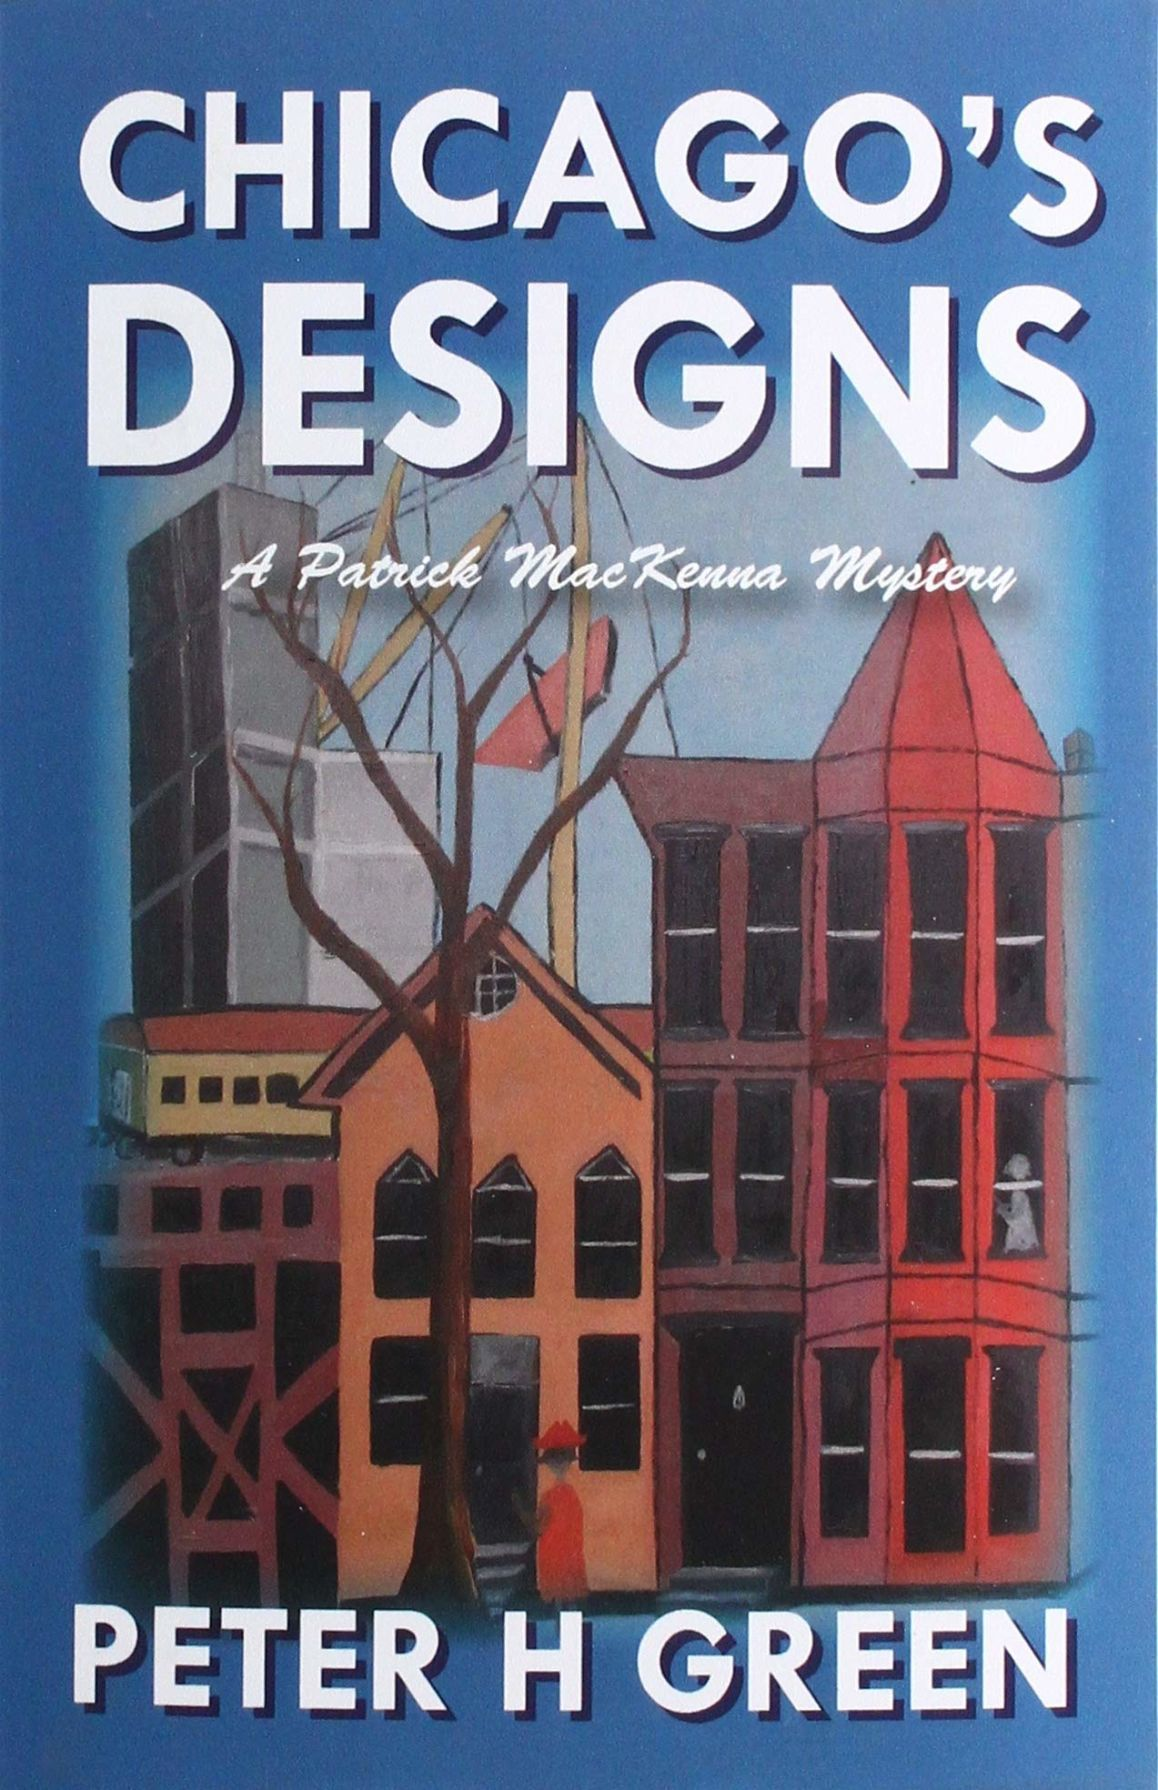 'Chicago's Designs' by Peter H Green